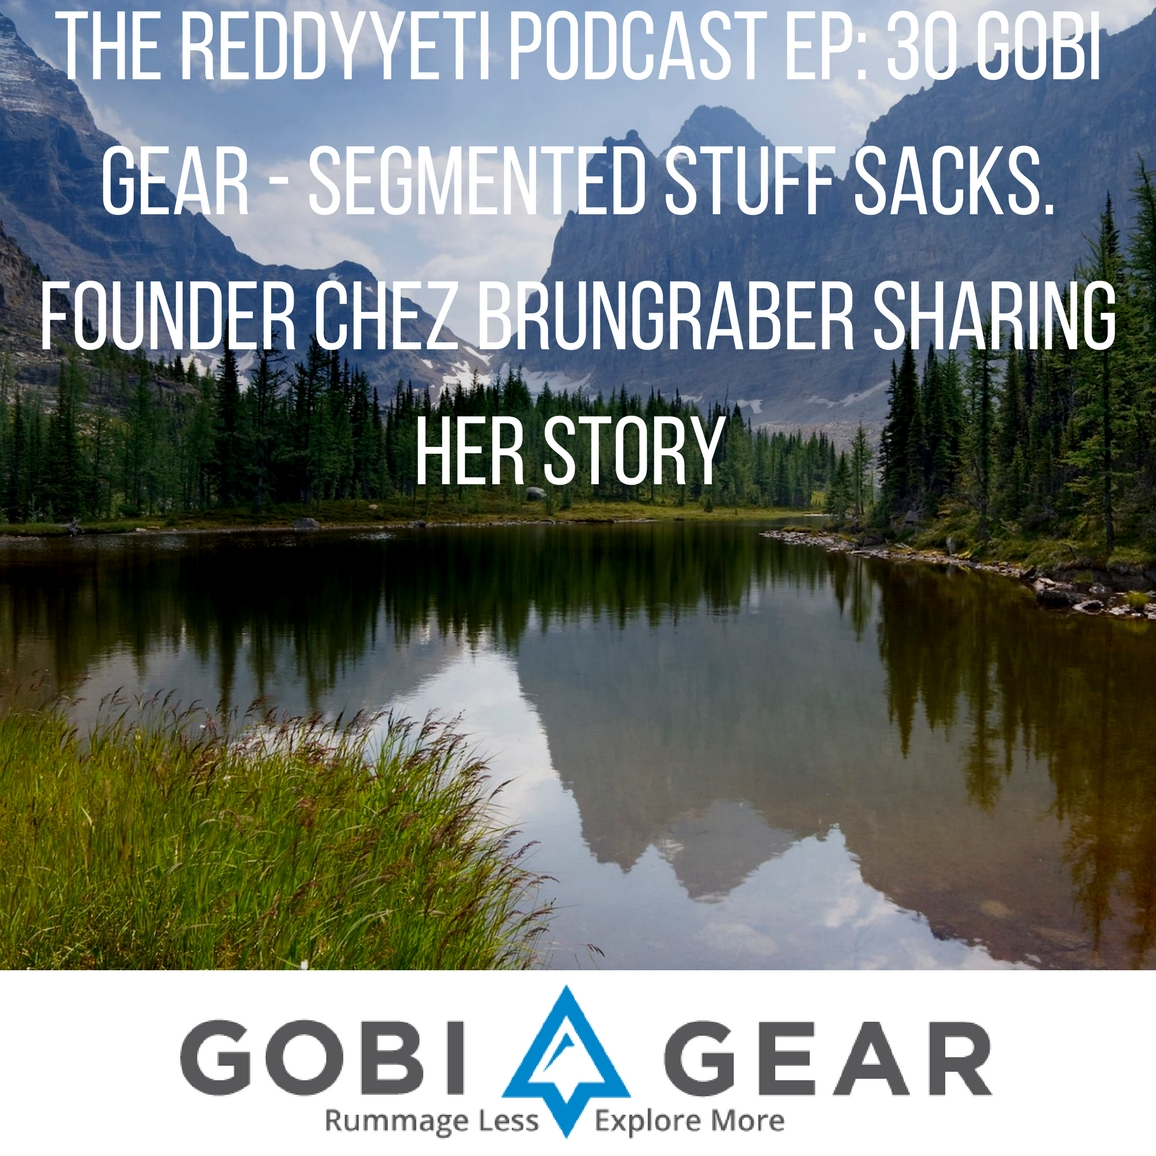 Gobi Gear podcast image (2).jpg